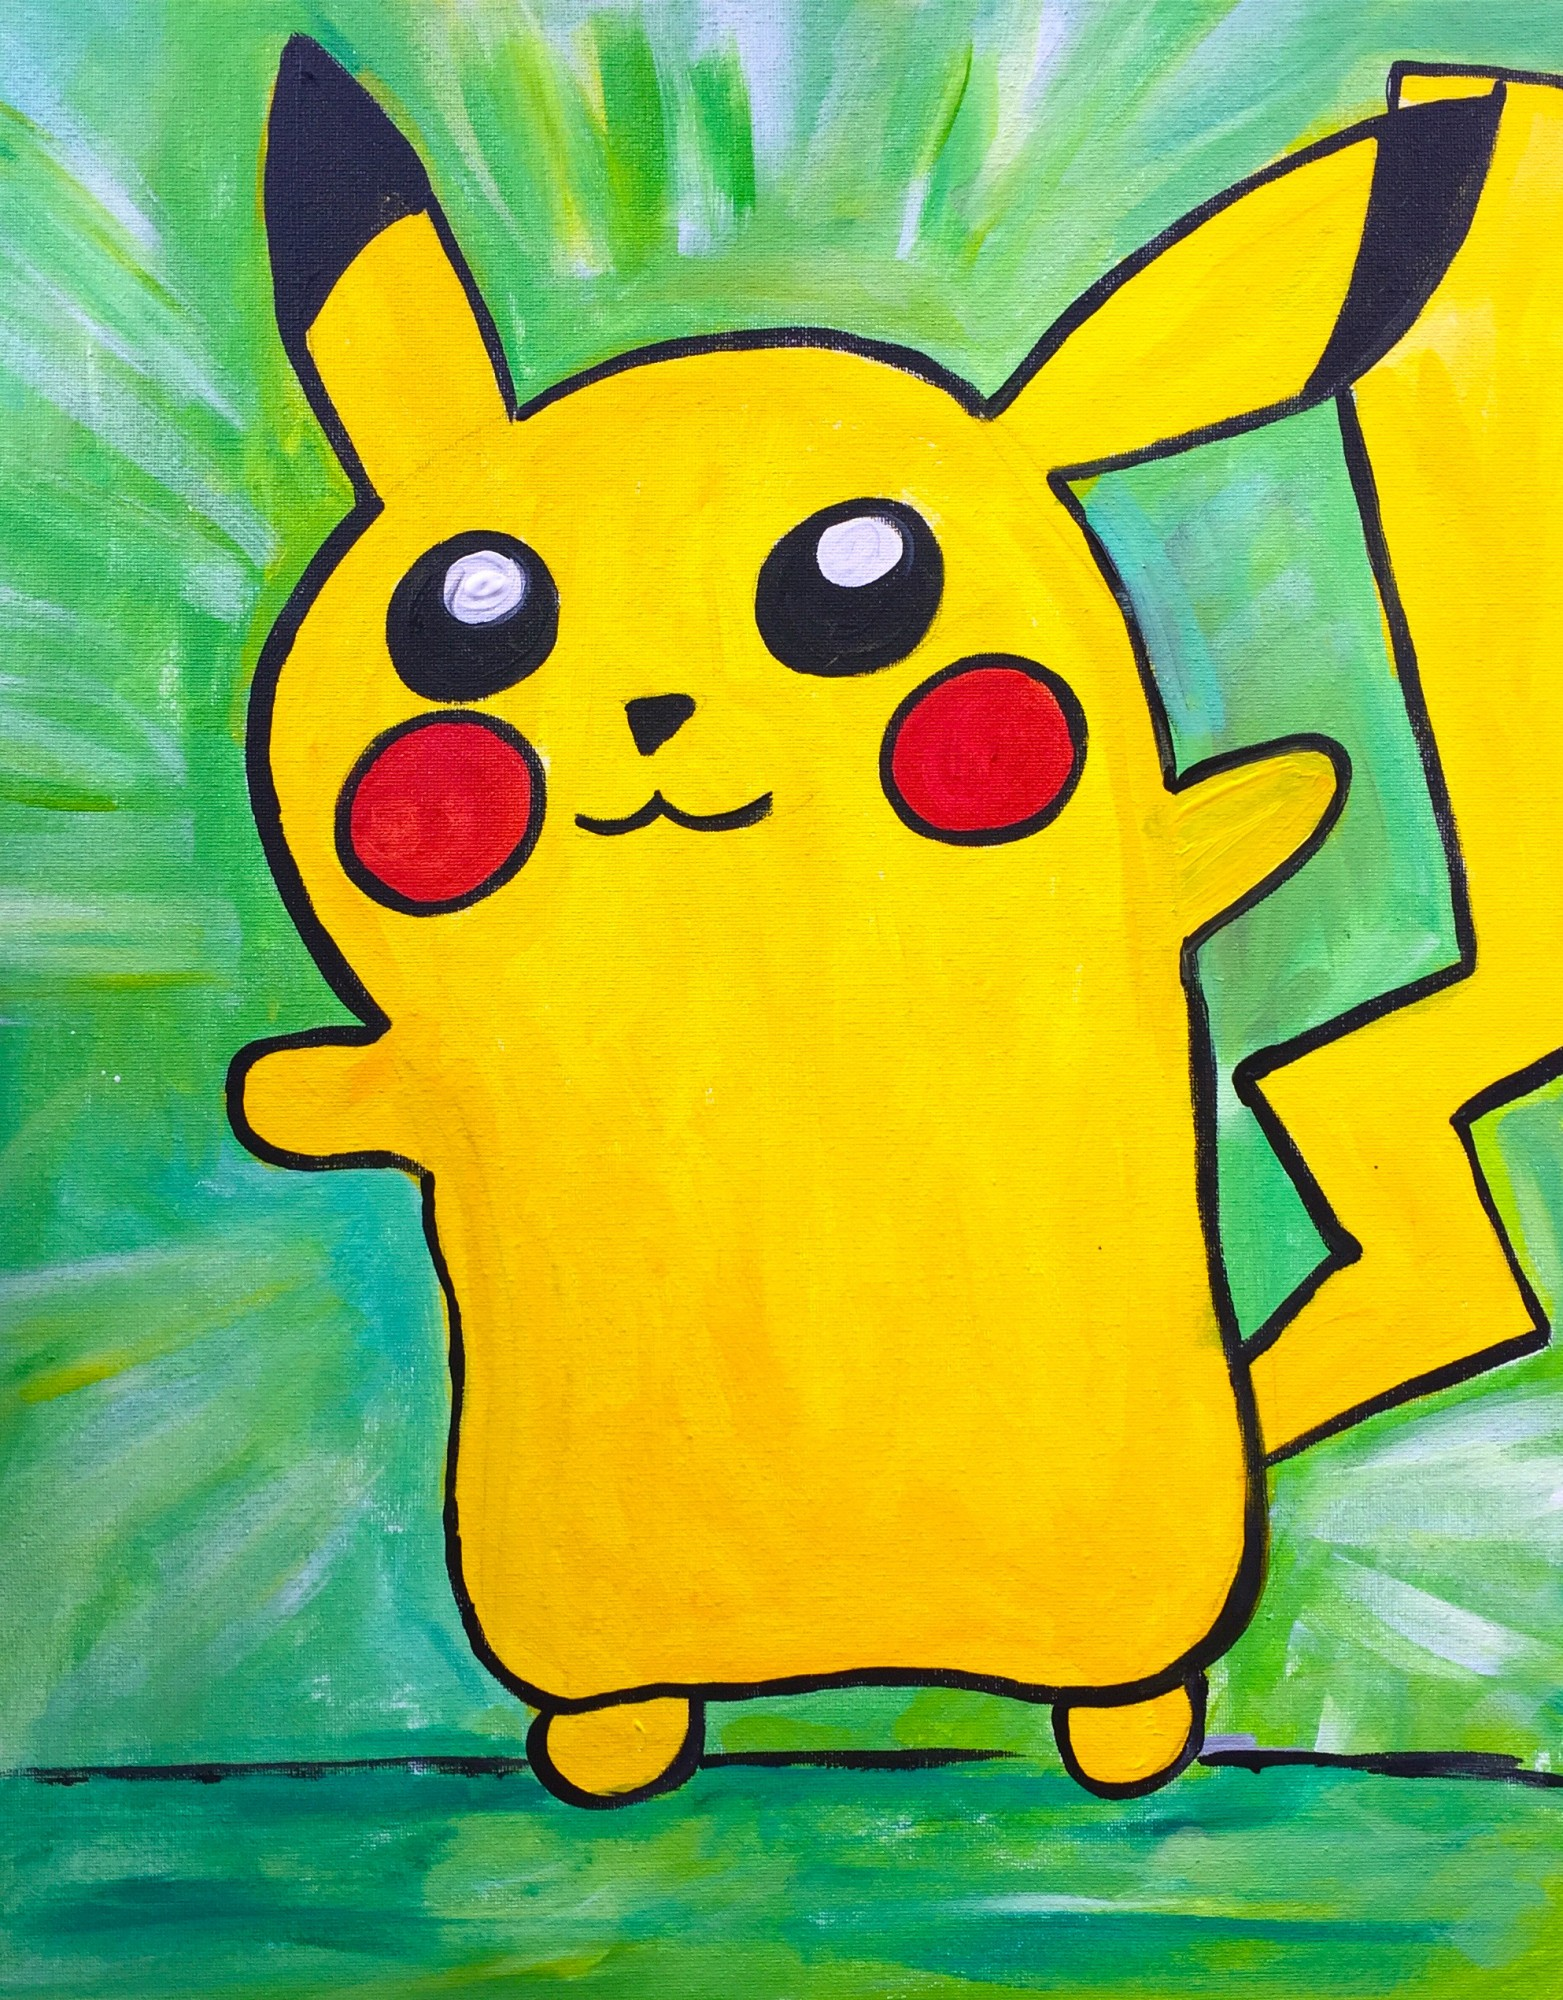 KidsDays Tuesday $25 Pikachu